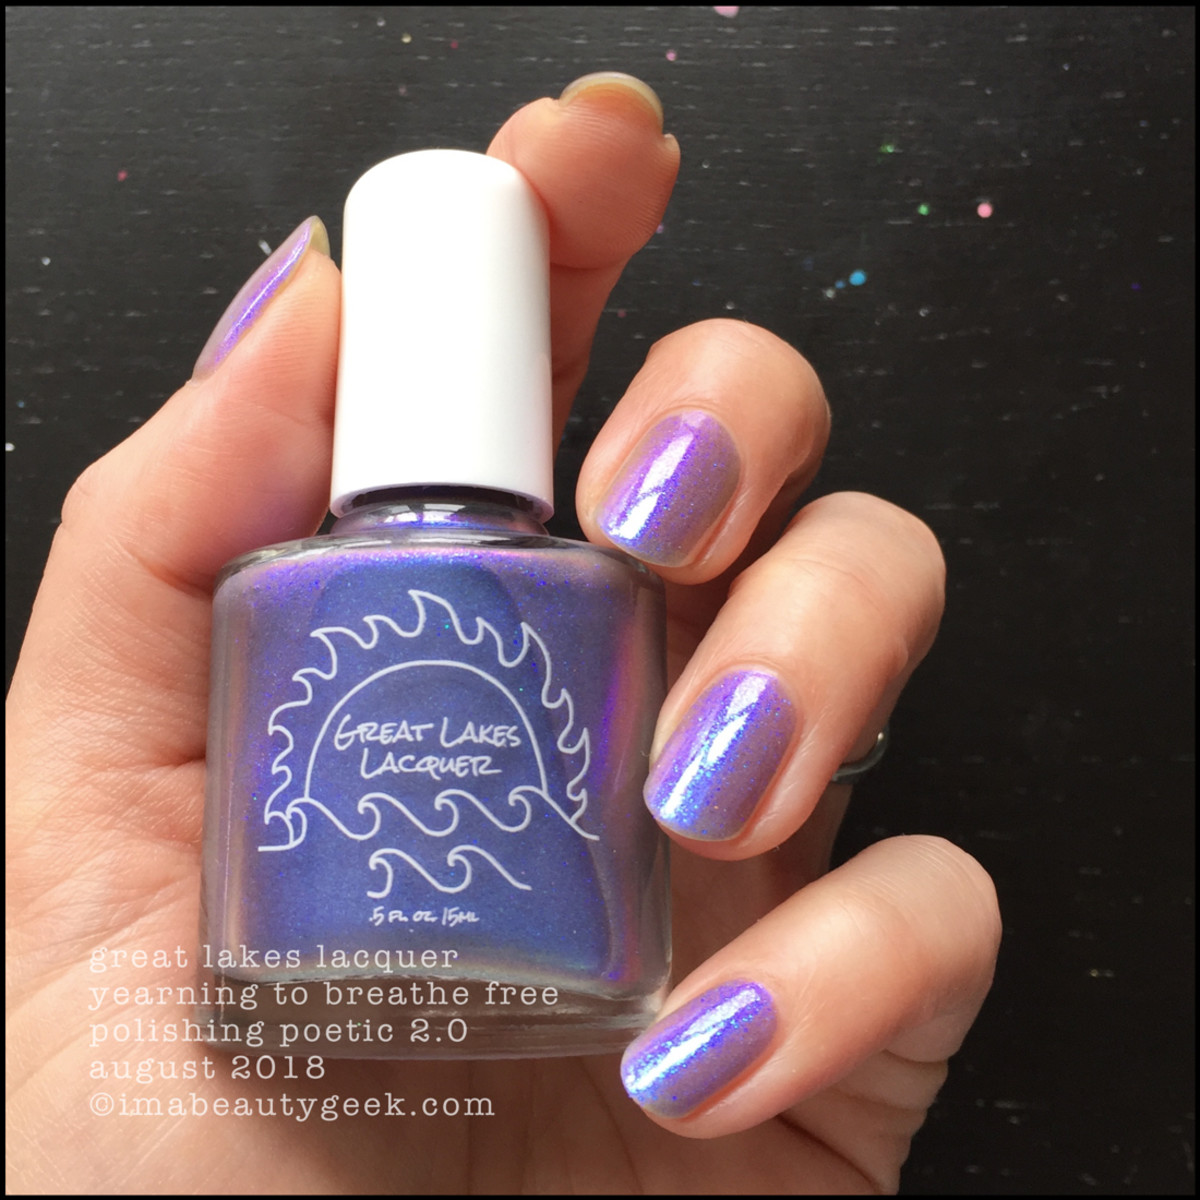 Great Lakes Lacquer Yearning to Breathe Free 2 _ Great Lakes Lacquer Polishing Poetic 2.0 Swatches Review